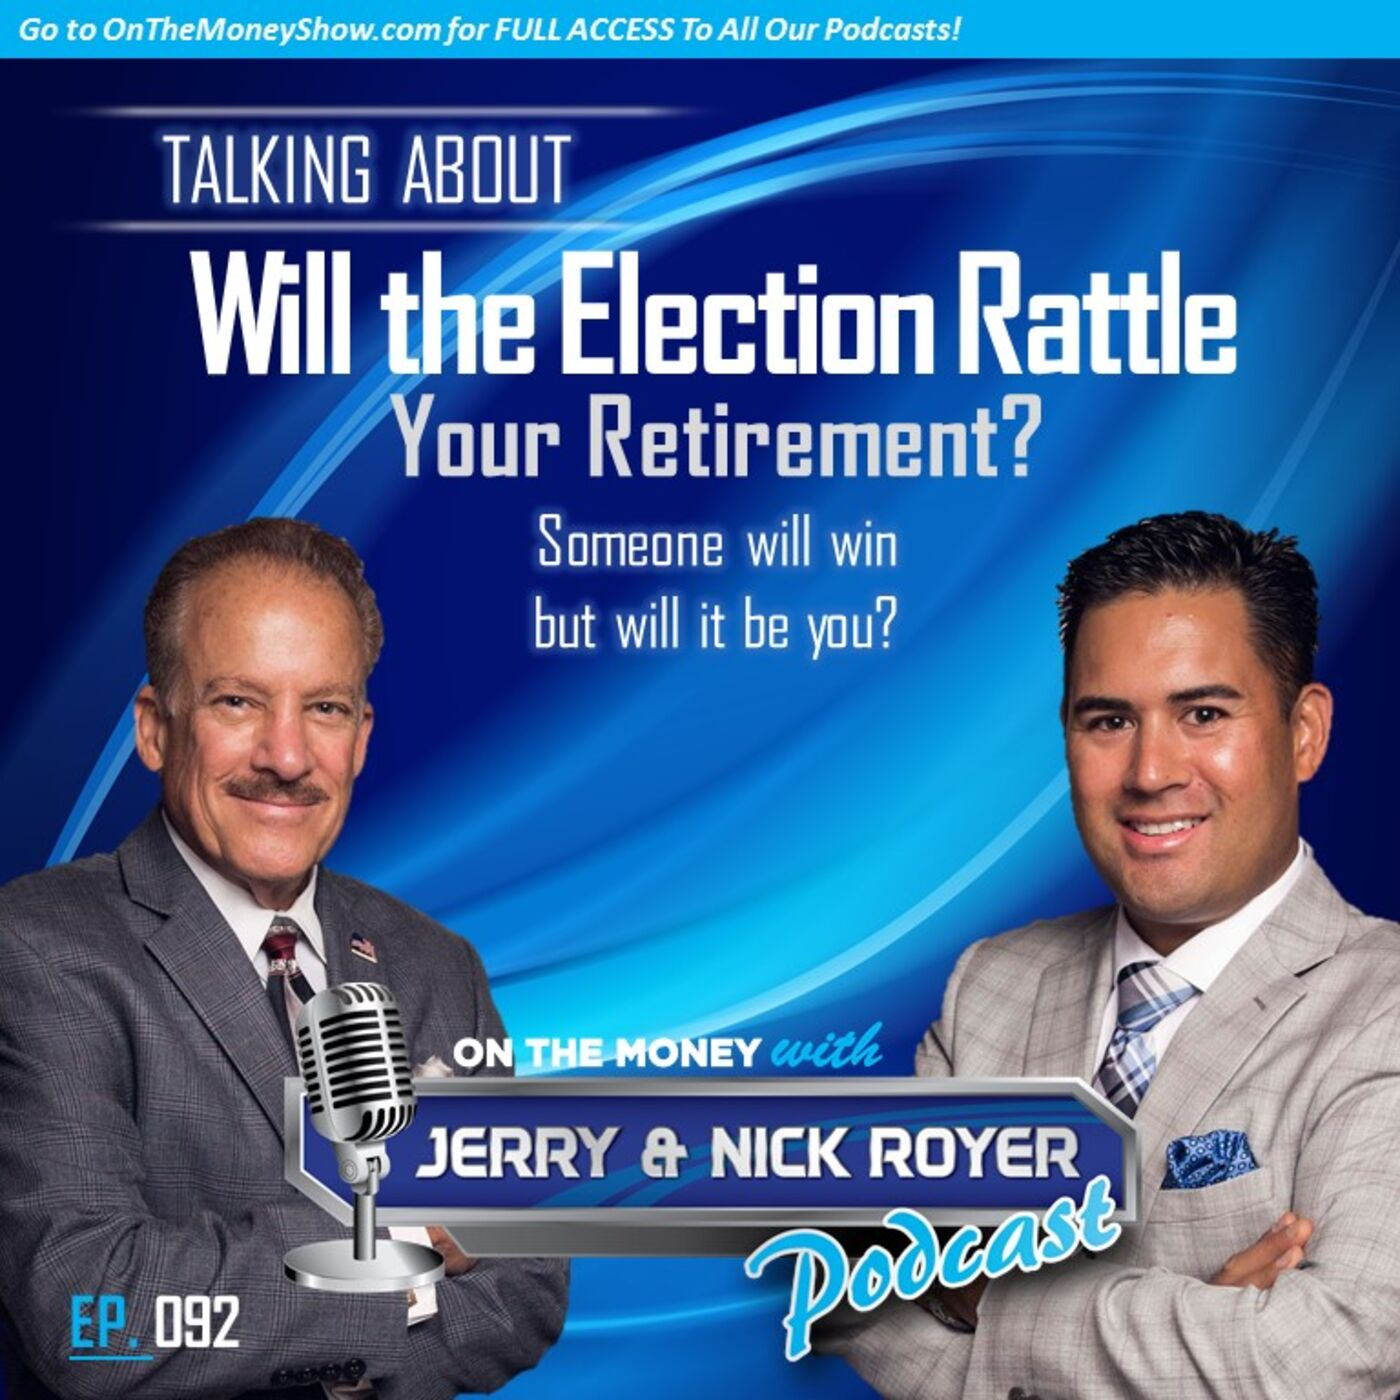 Episode #92: Will the Election Rattle Your Retirement?